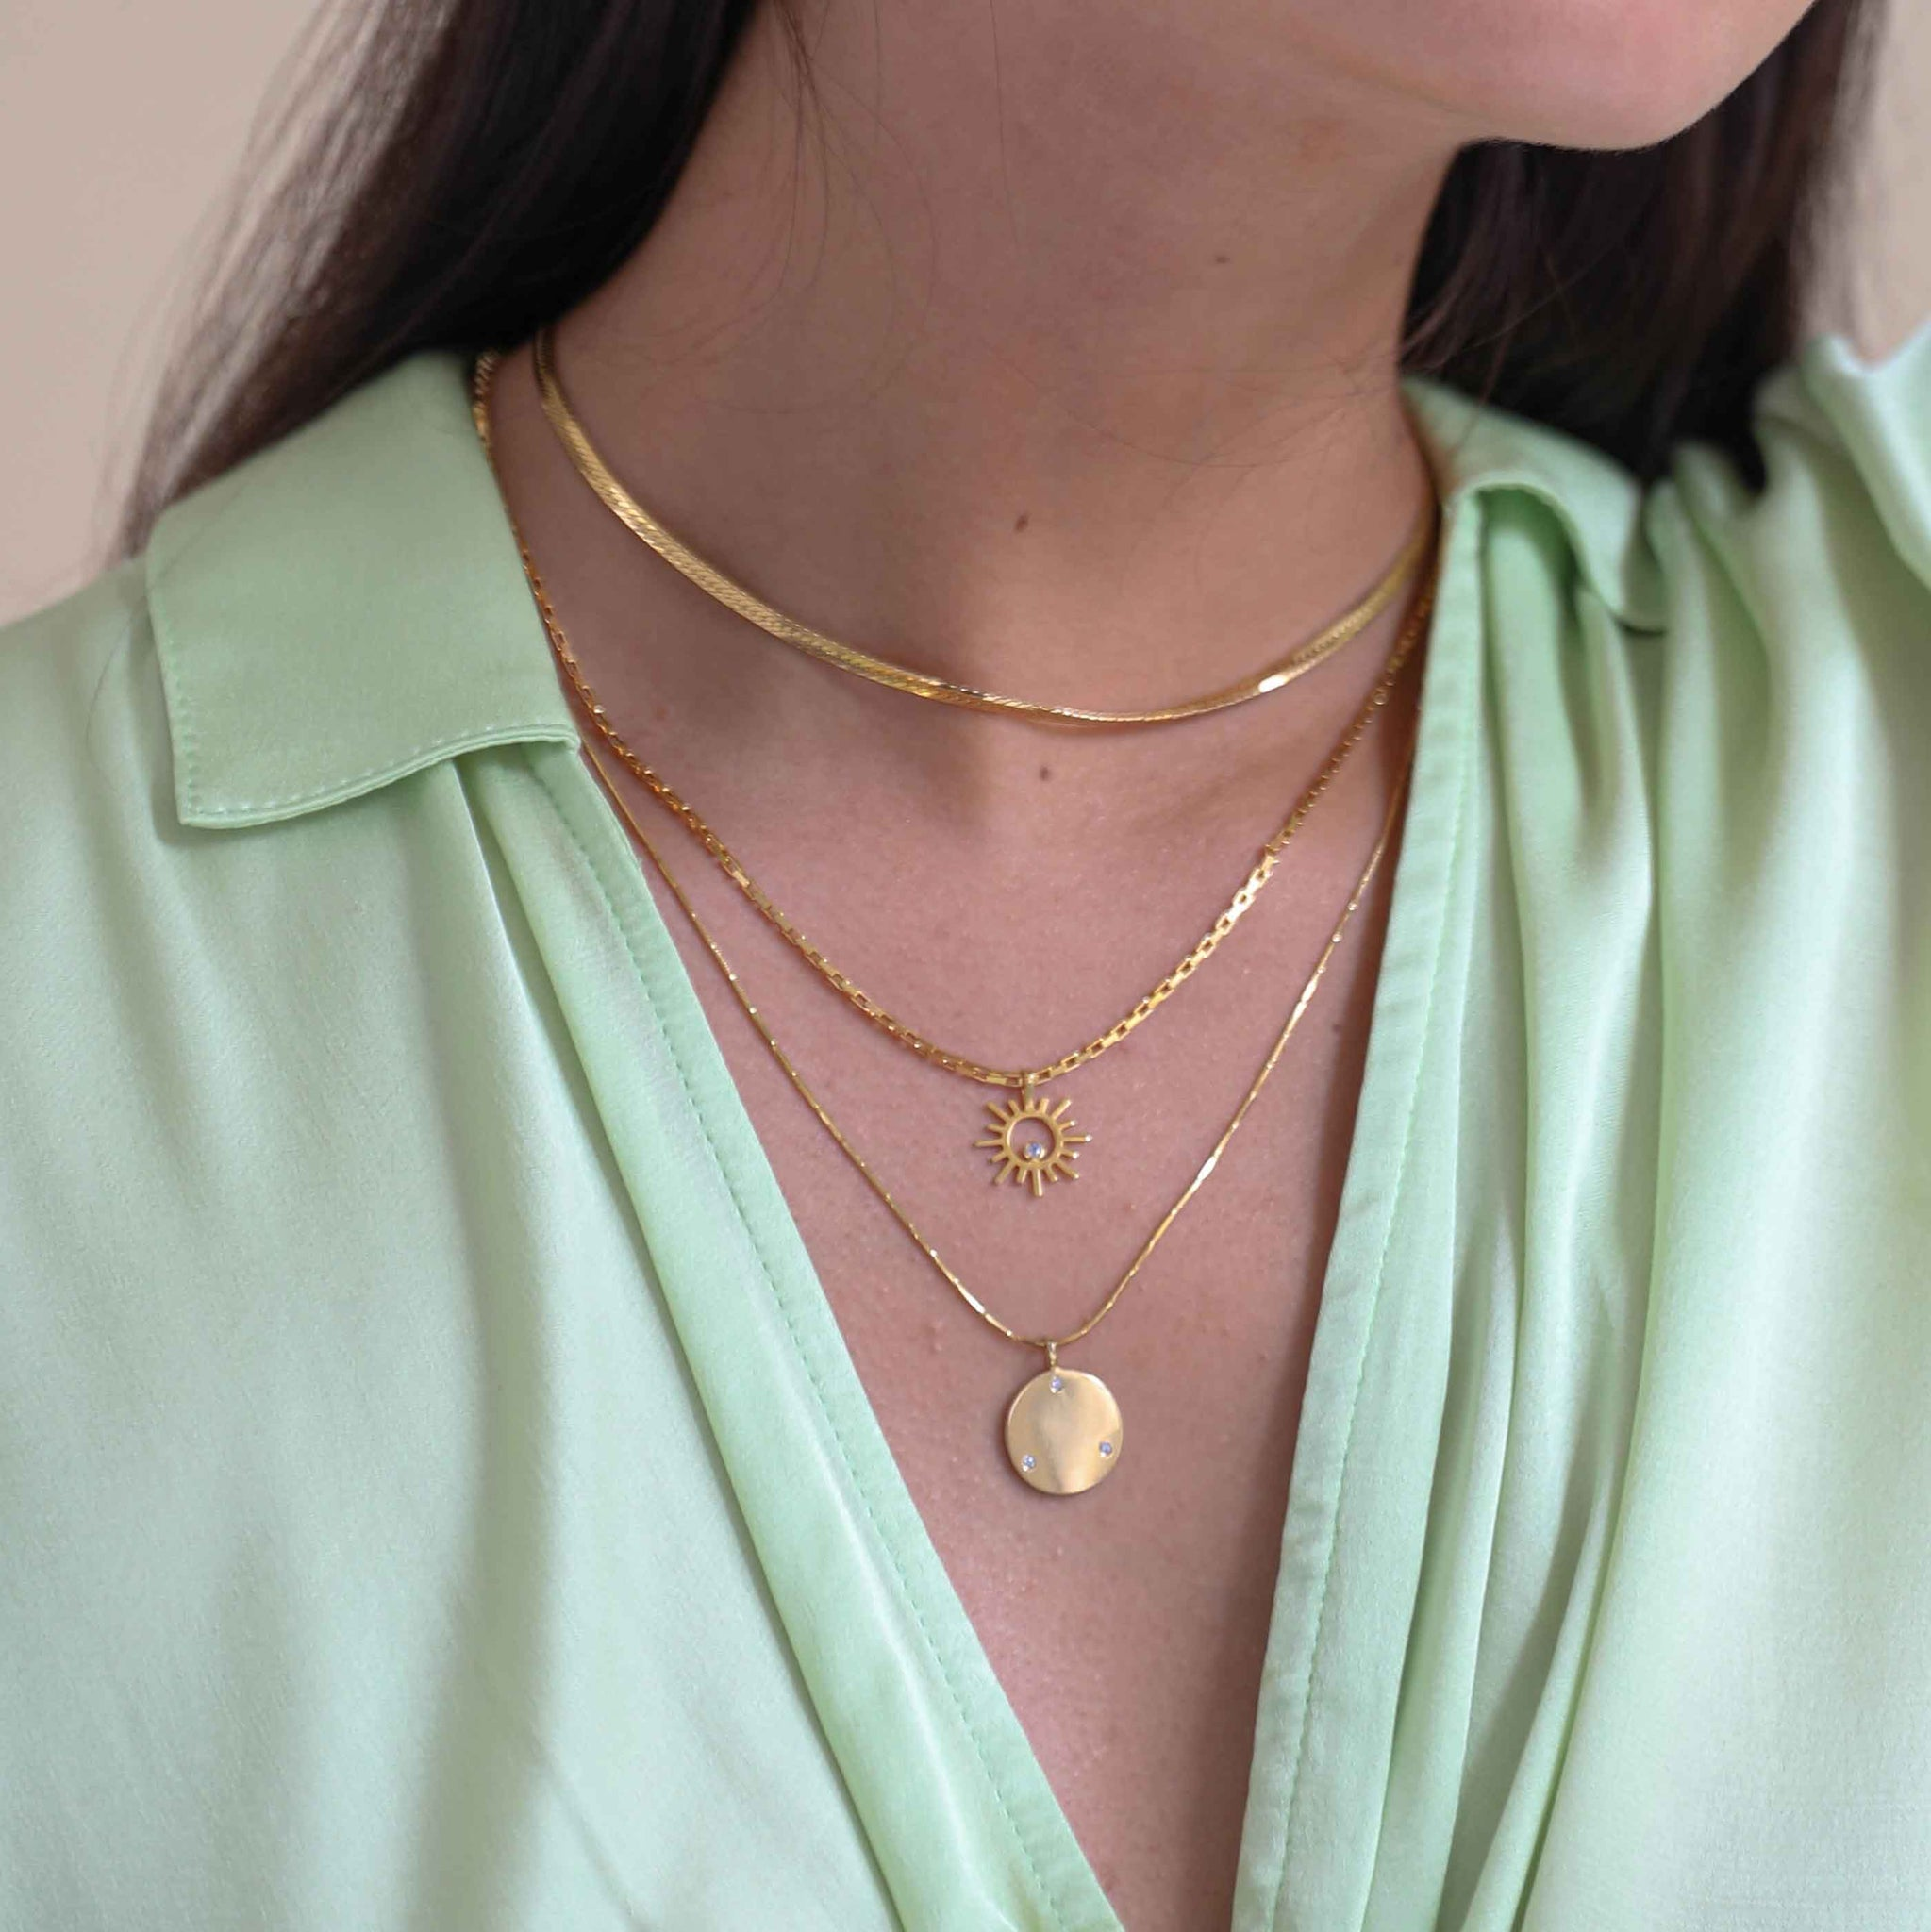 Coin & Stones Necklace Charm in Gold worn on fine bar chain